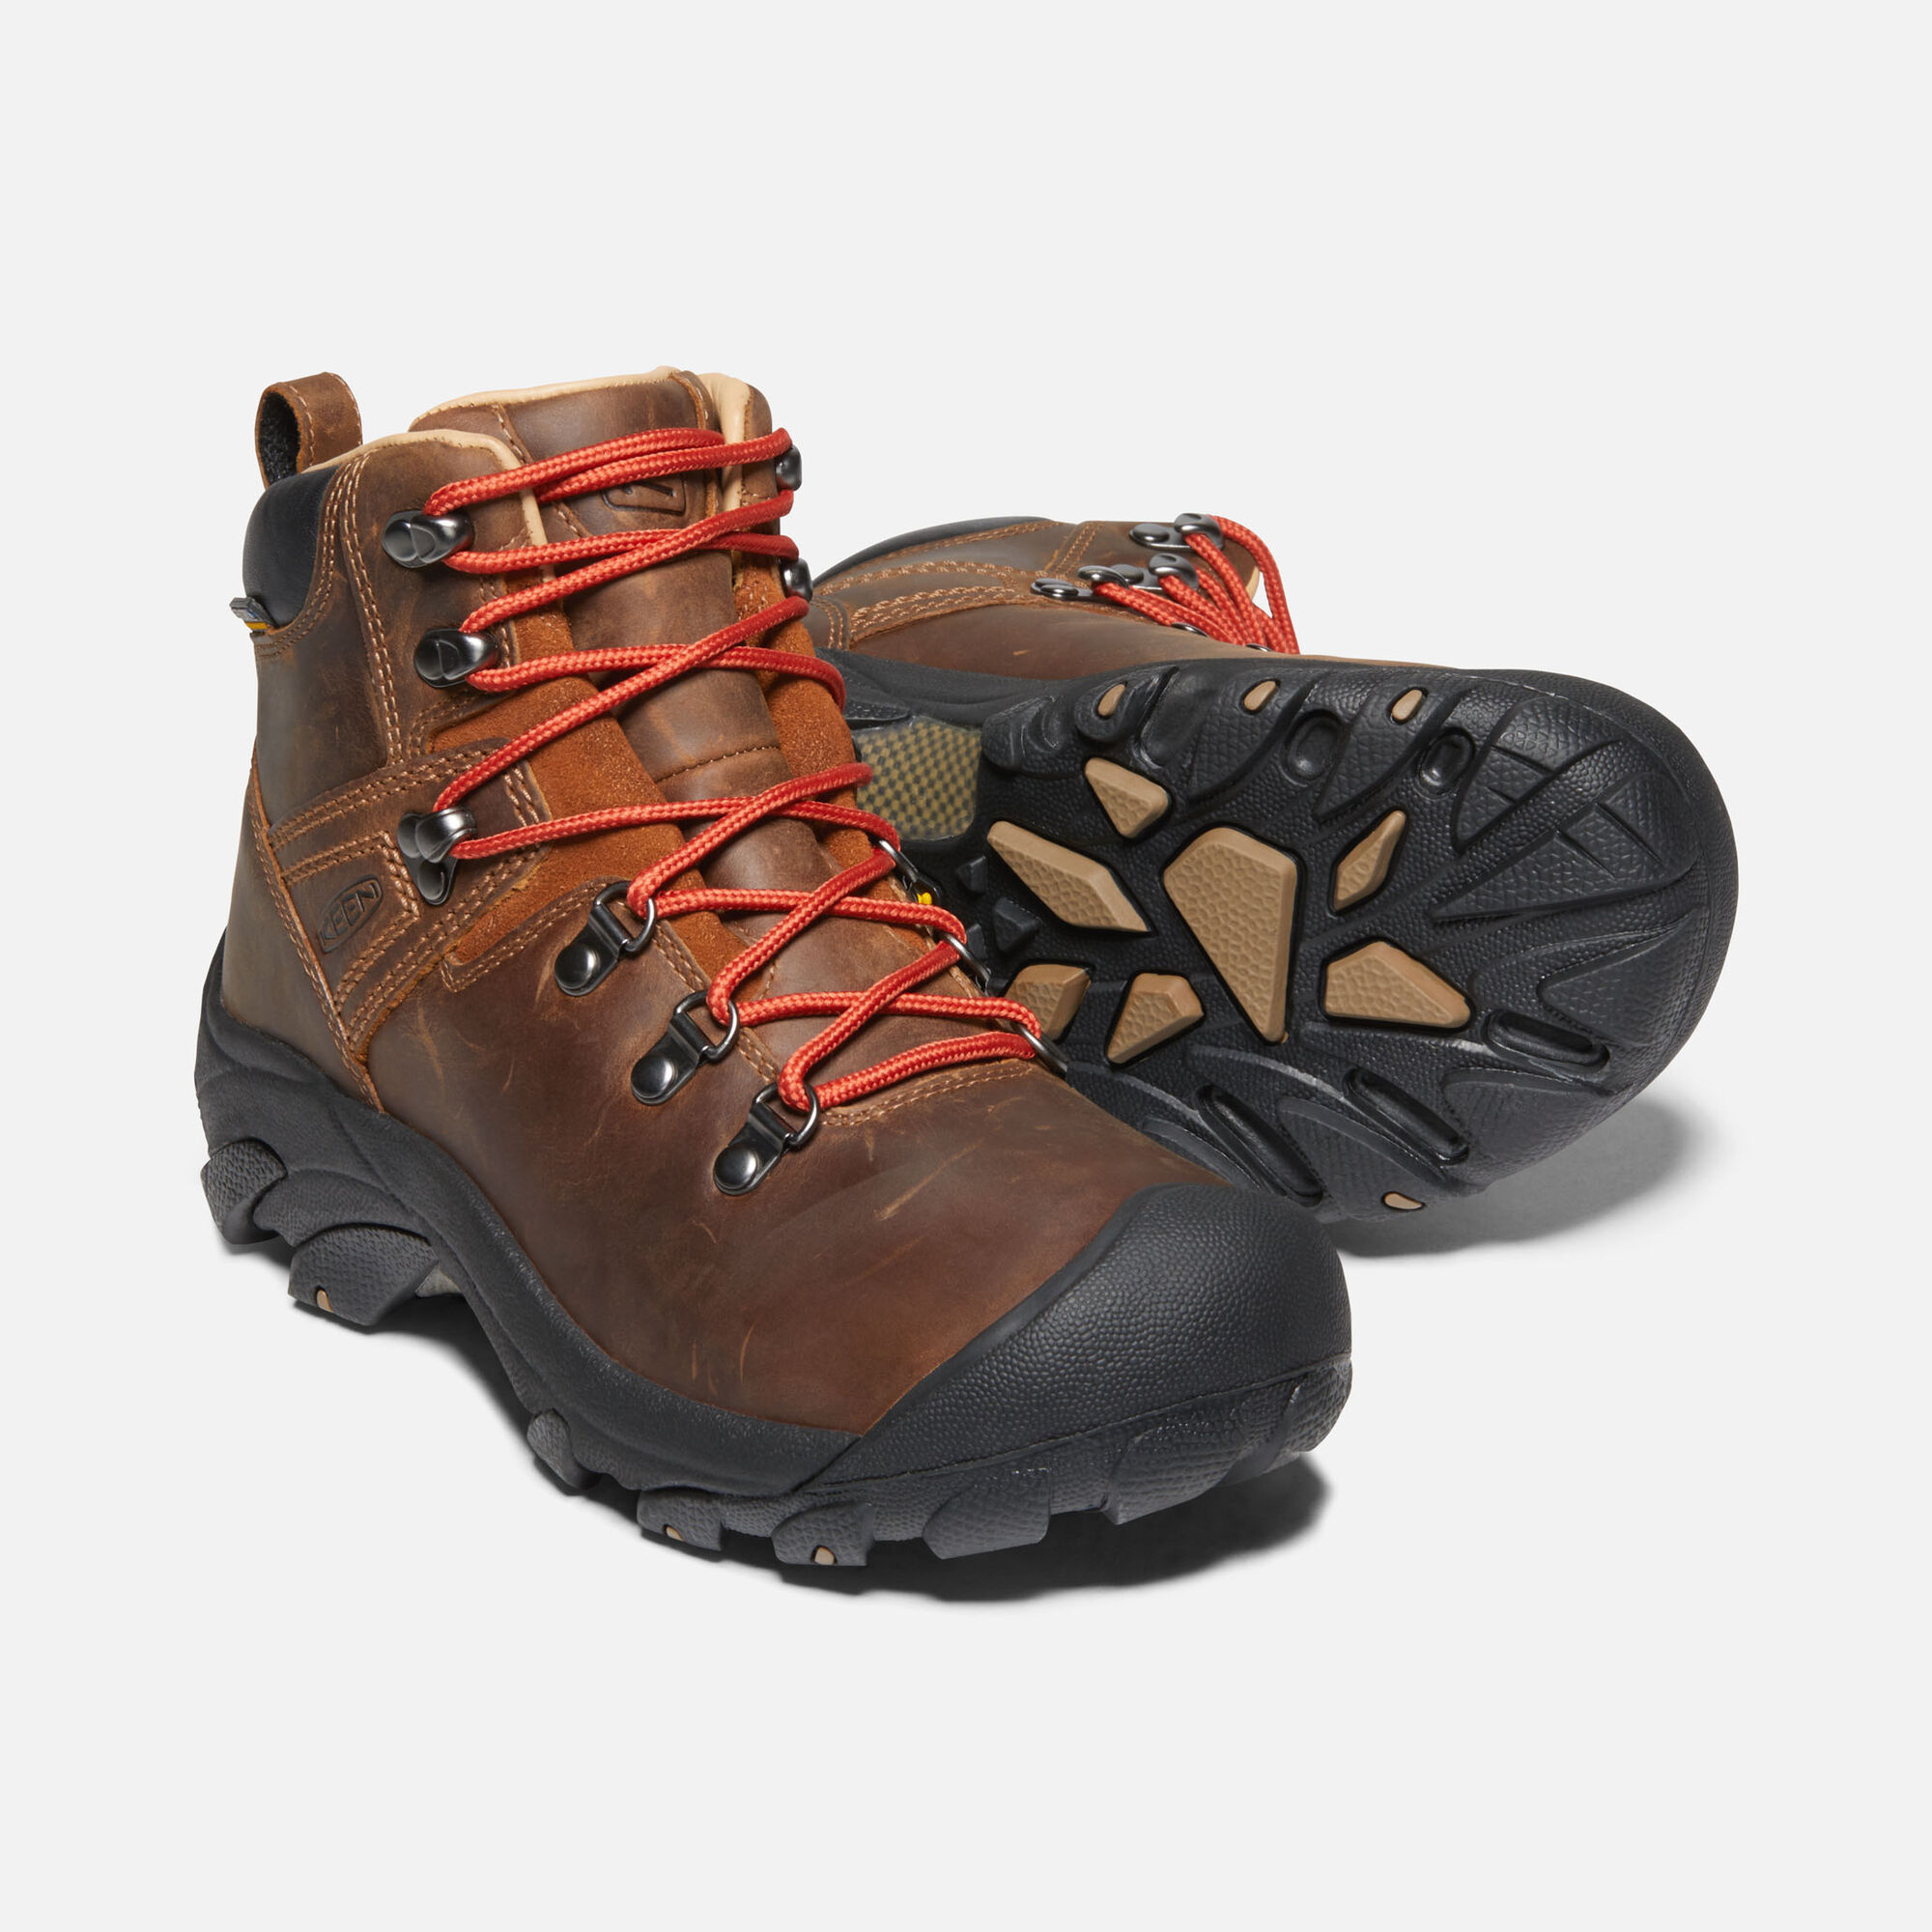 5793b559c9e50f Women s Pyrenees - European-Style Hiking Boots